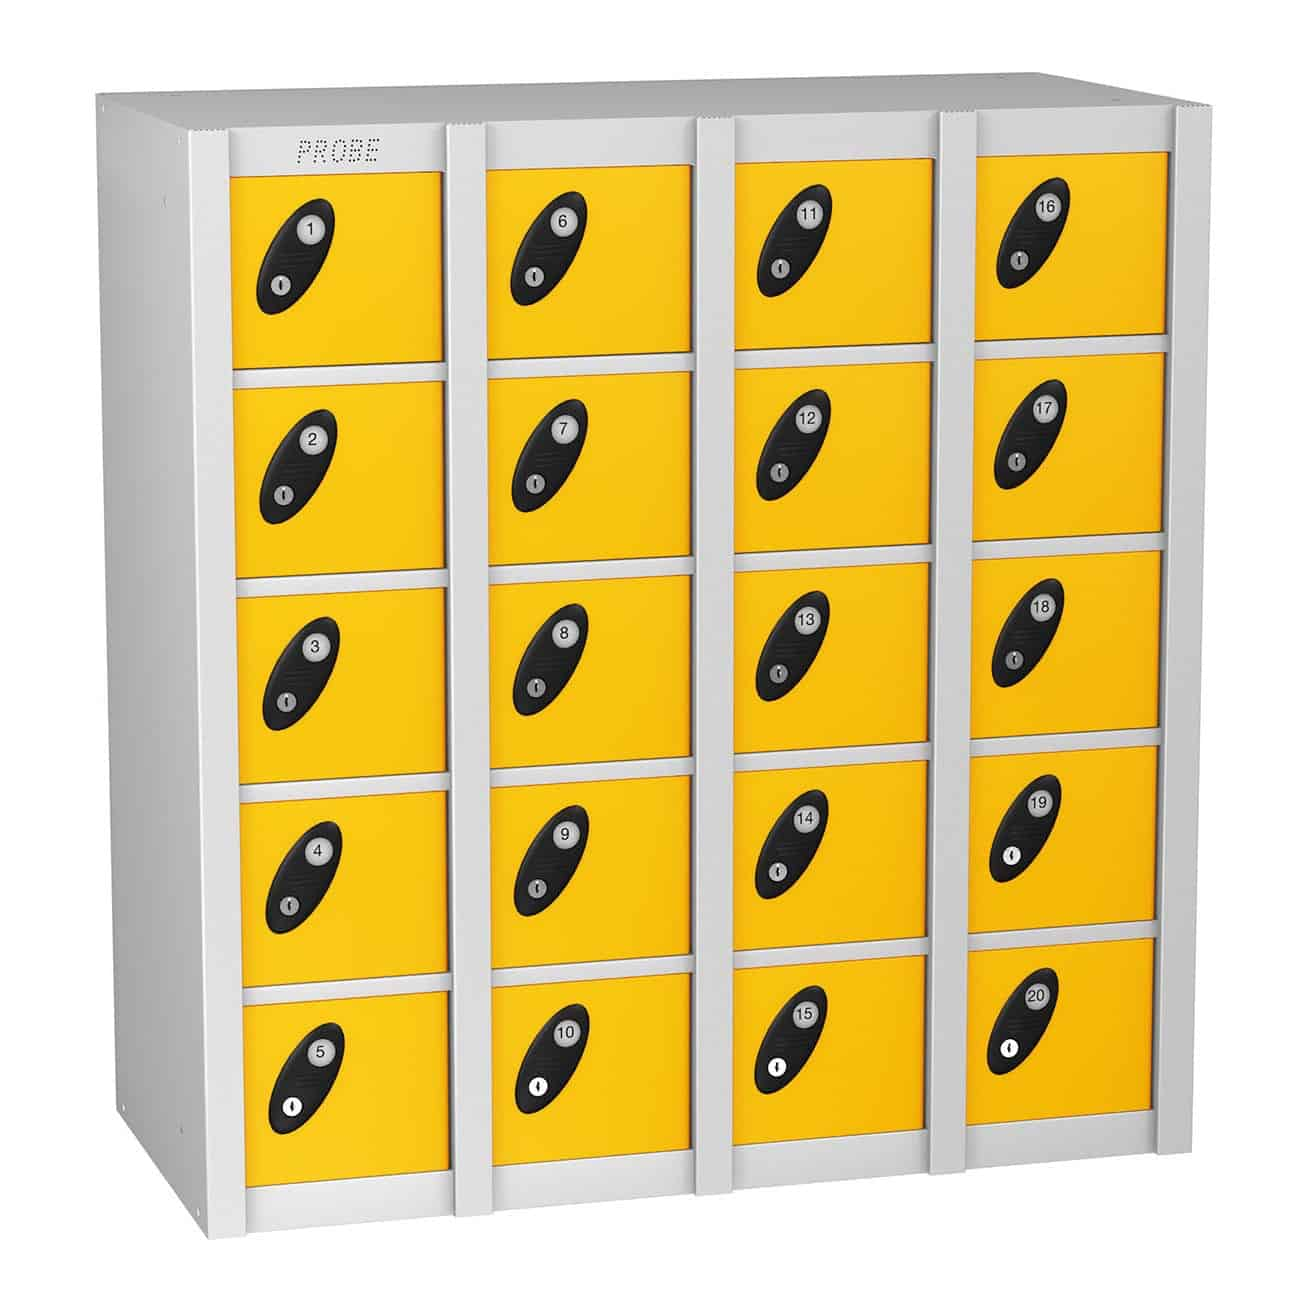 Minibox 20 Door Lockers